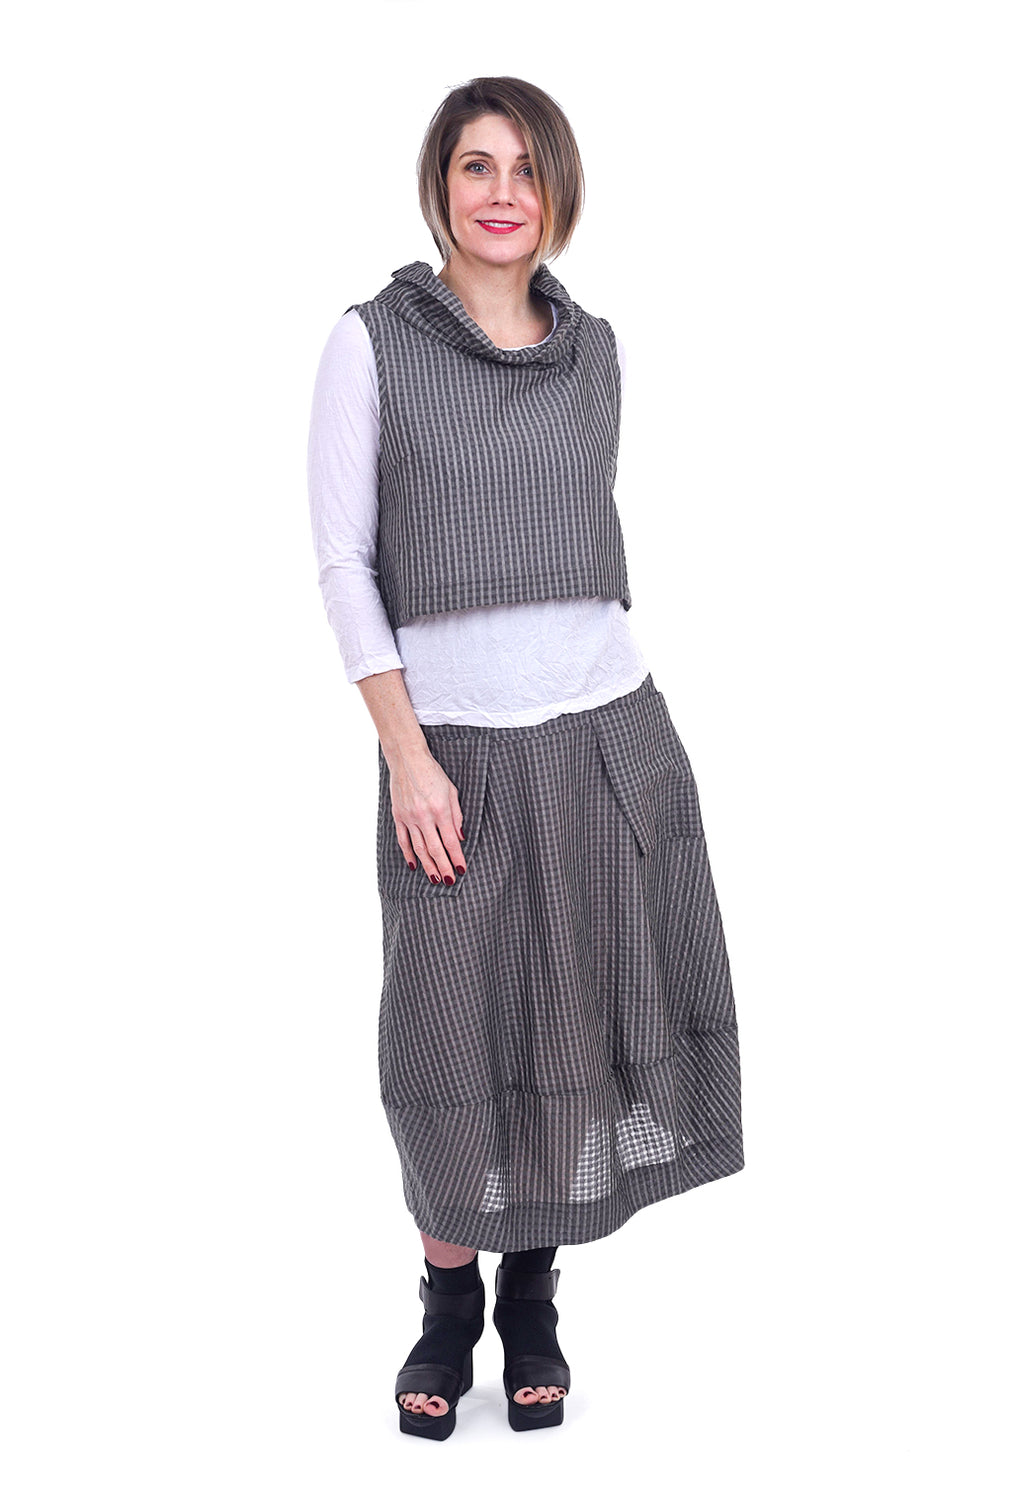 Jason by Comfy USA Sandy Skirt, Gray Multi